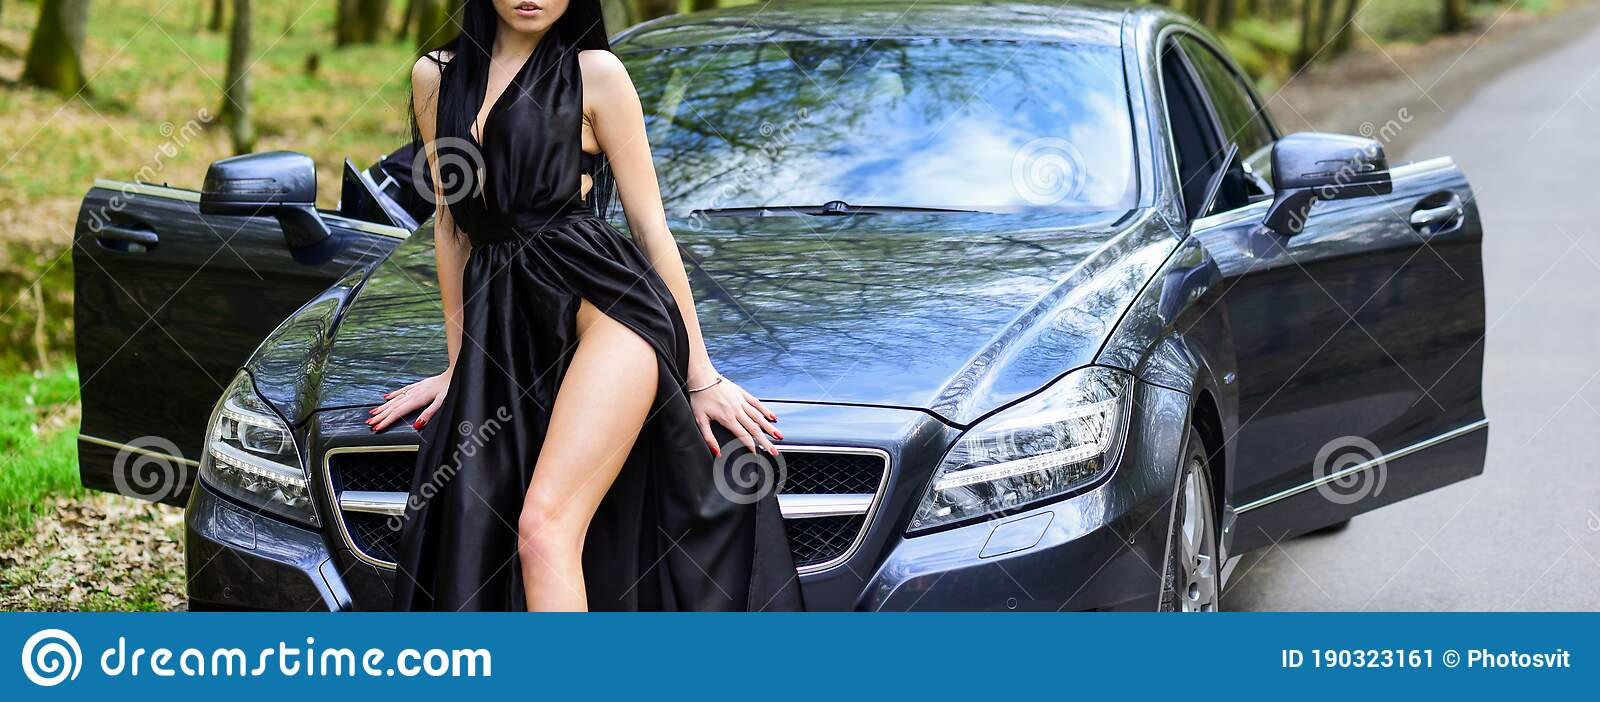 Seductive Pose. Sex In Car. Driver Girl. Beauty And ...